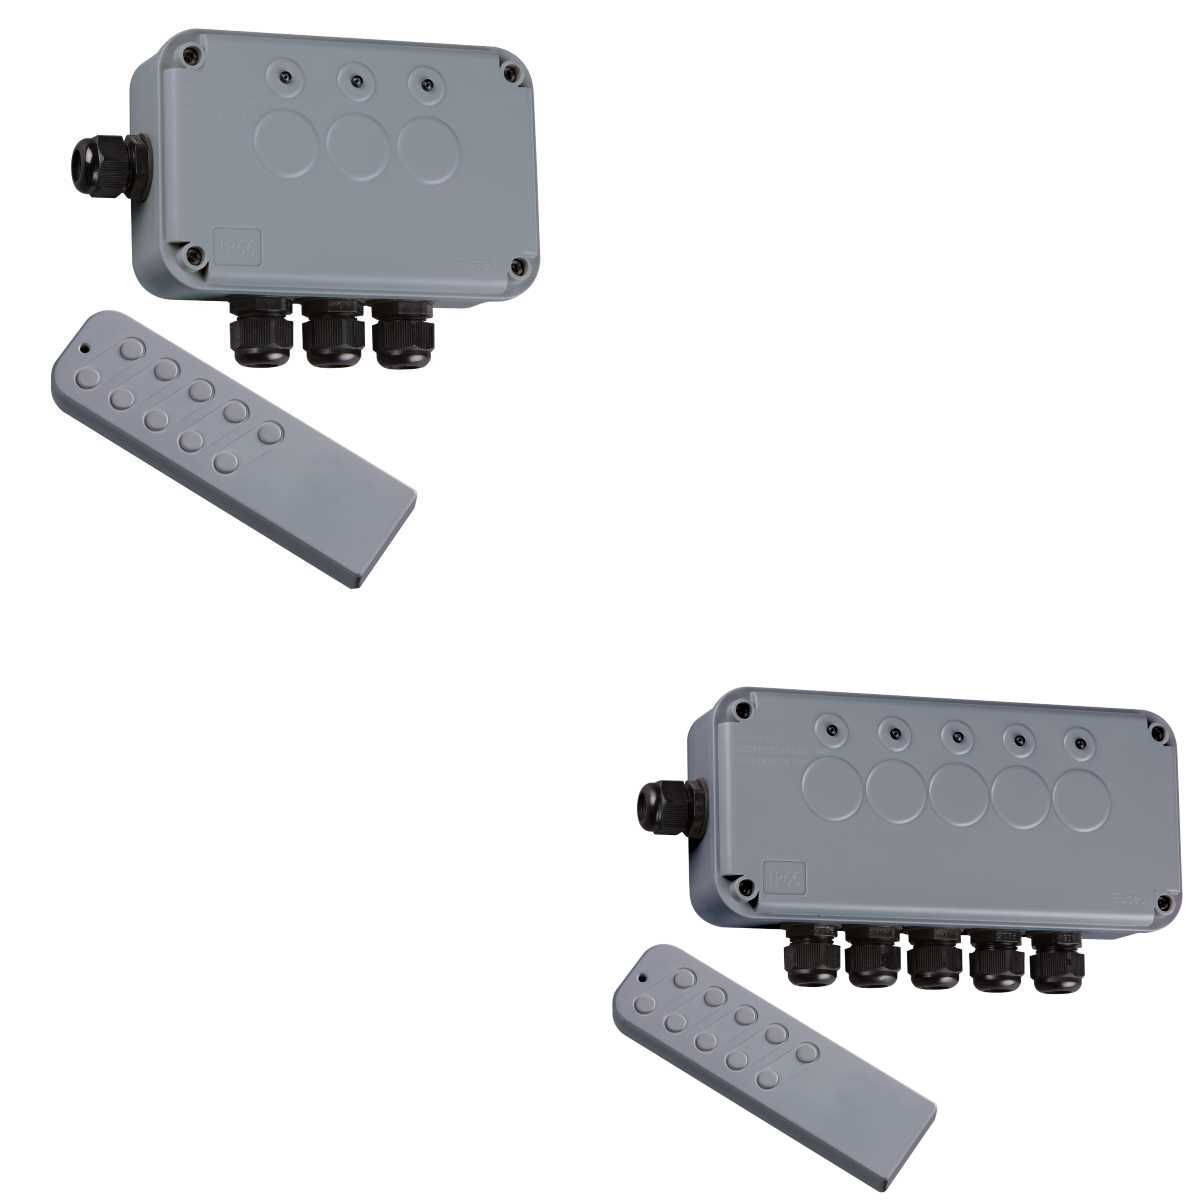 Knightsbridge 3G or 5G Remote Controlled Weatherproof Switch Boxes IP66